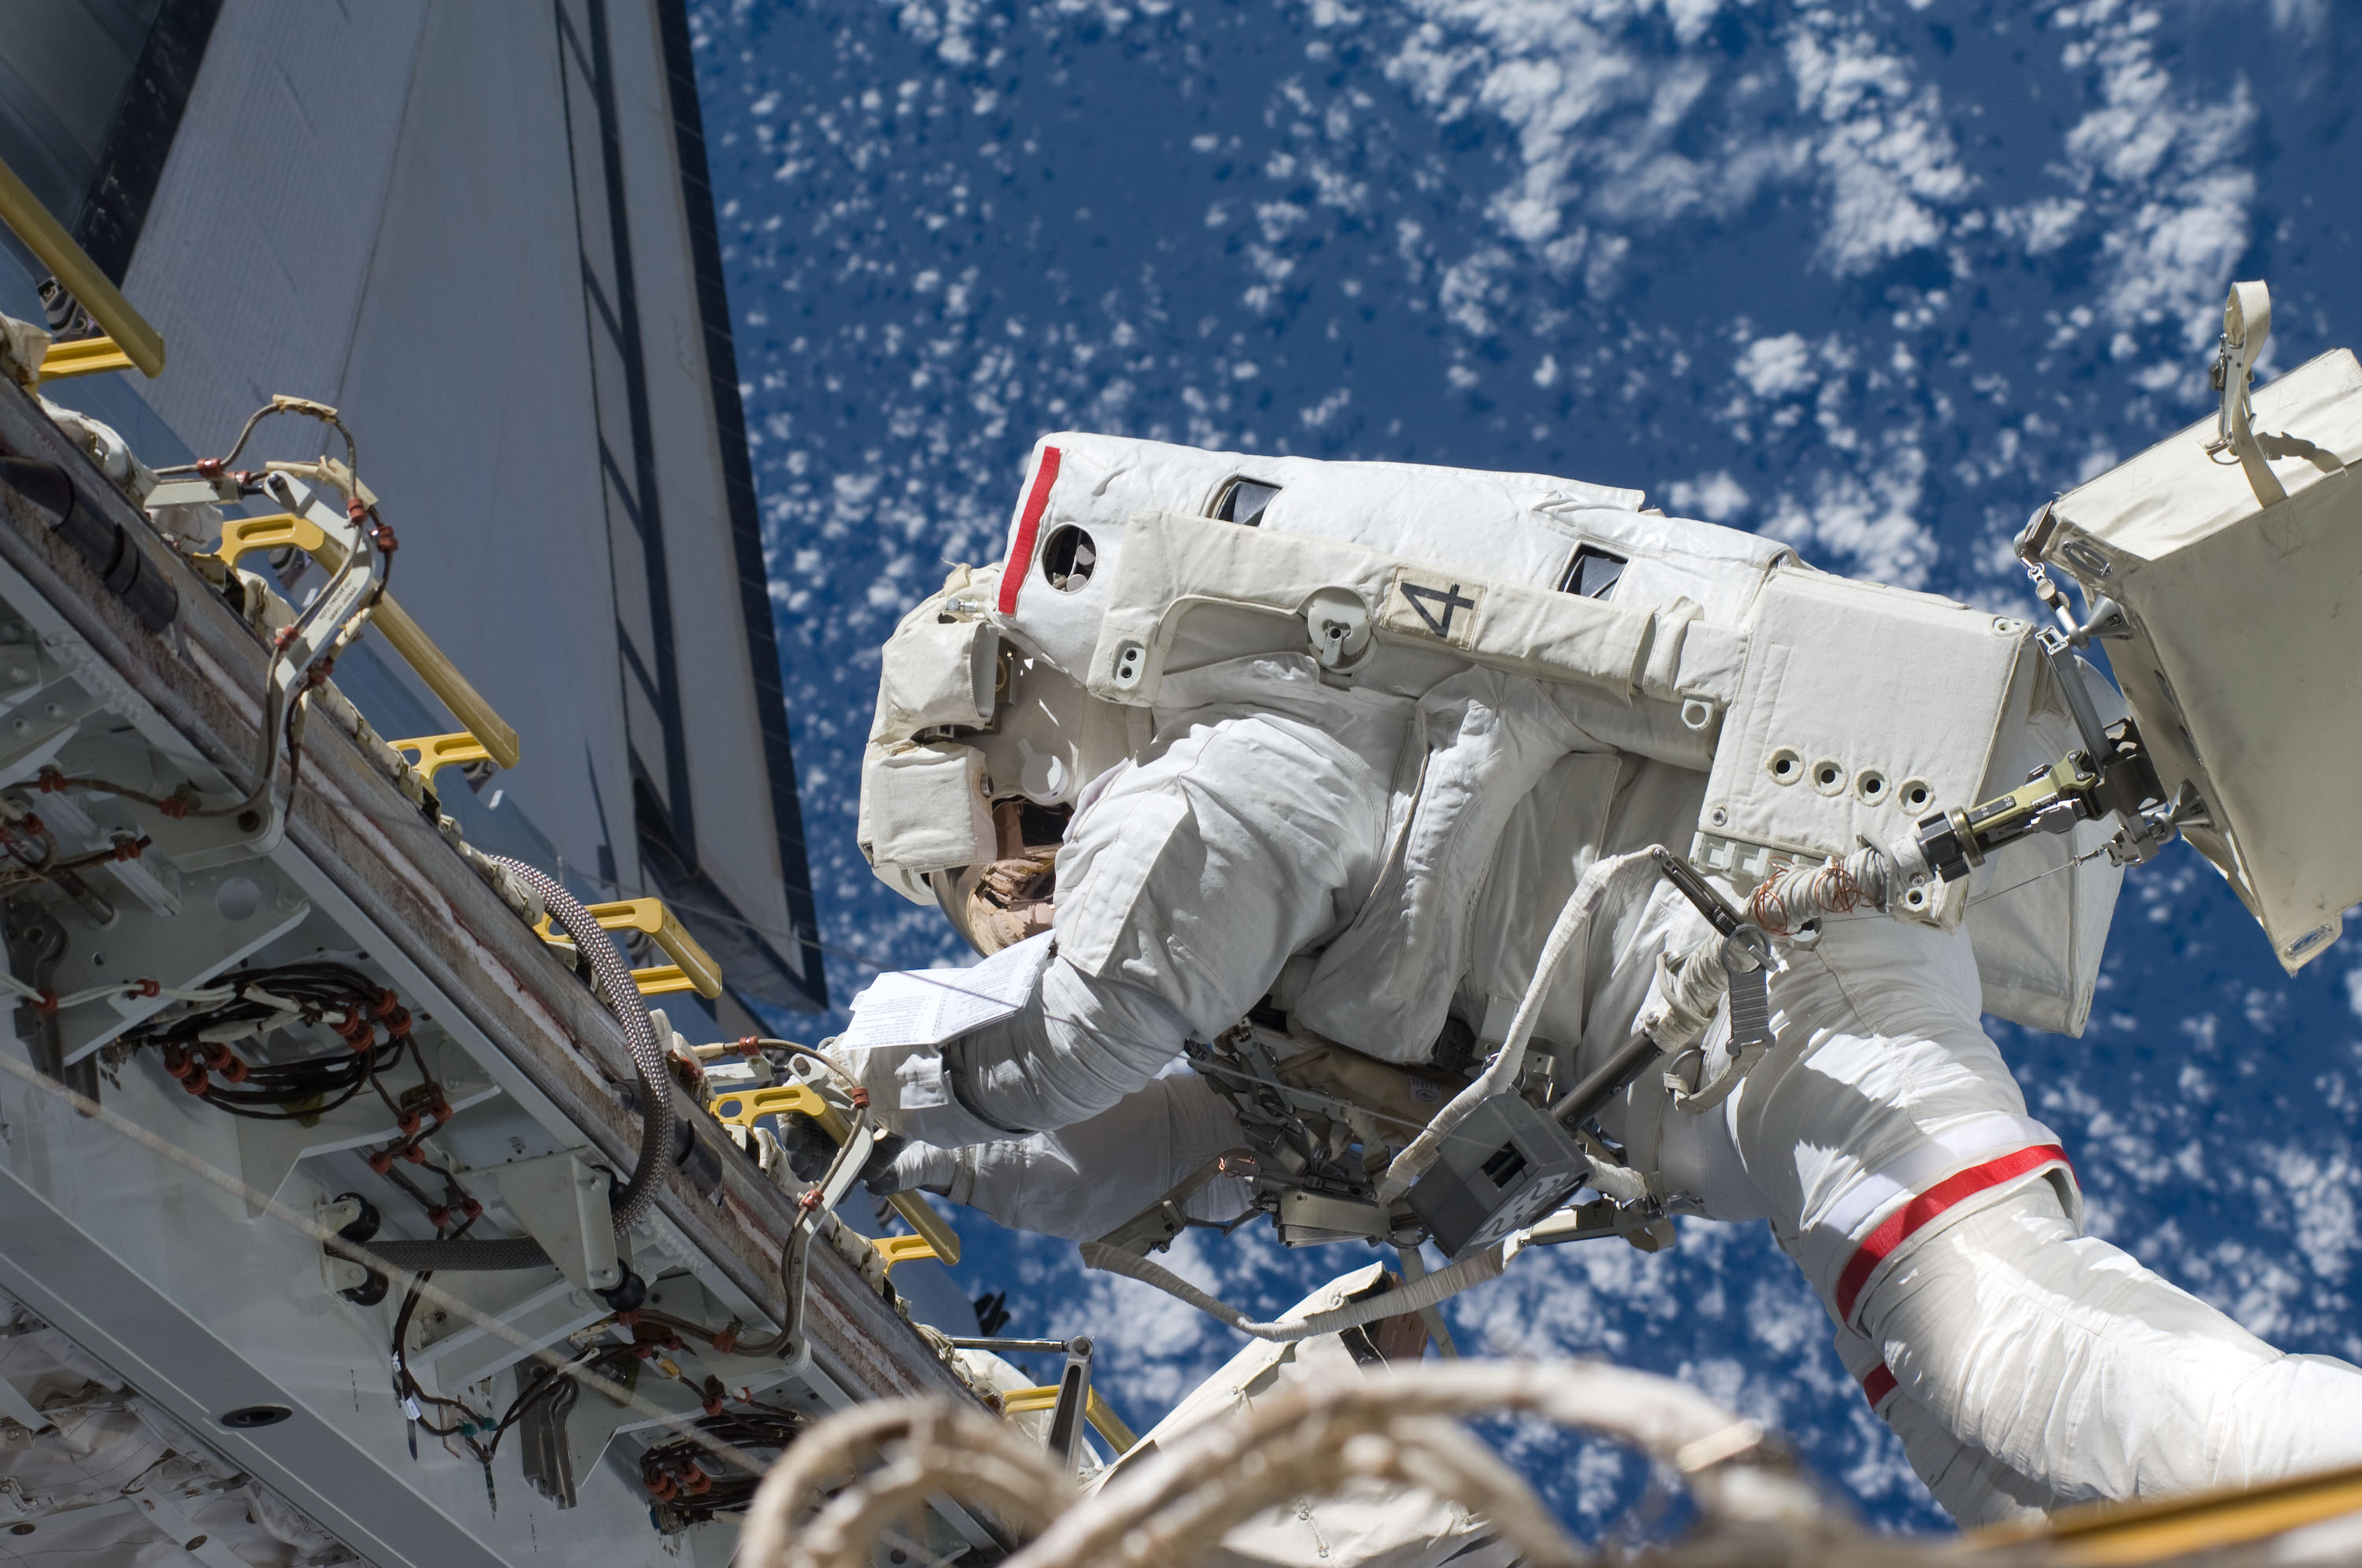 Riskiest job in space and more top science stories this week